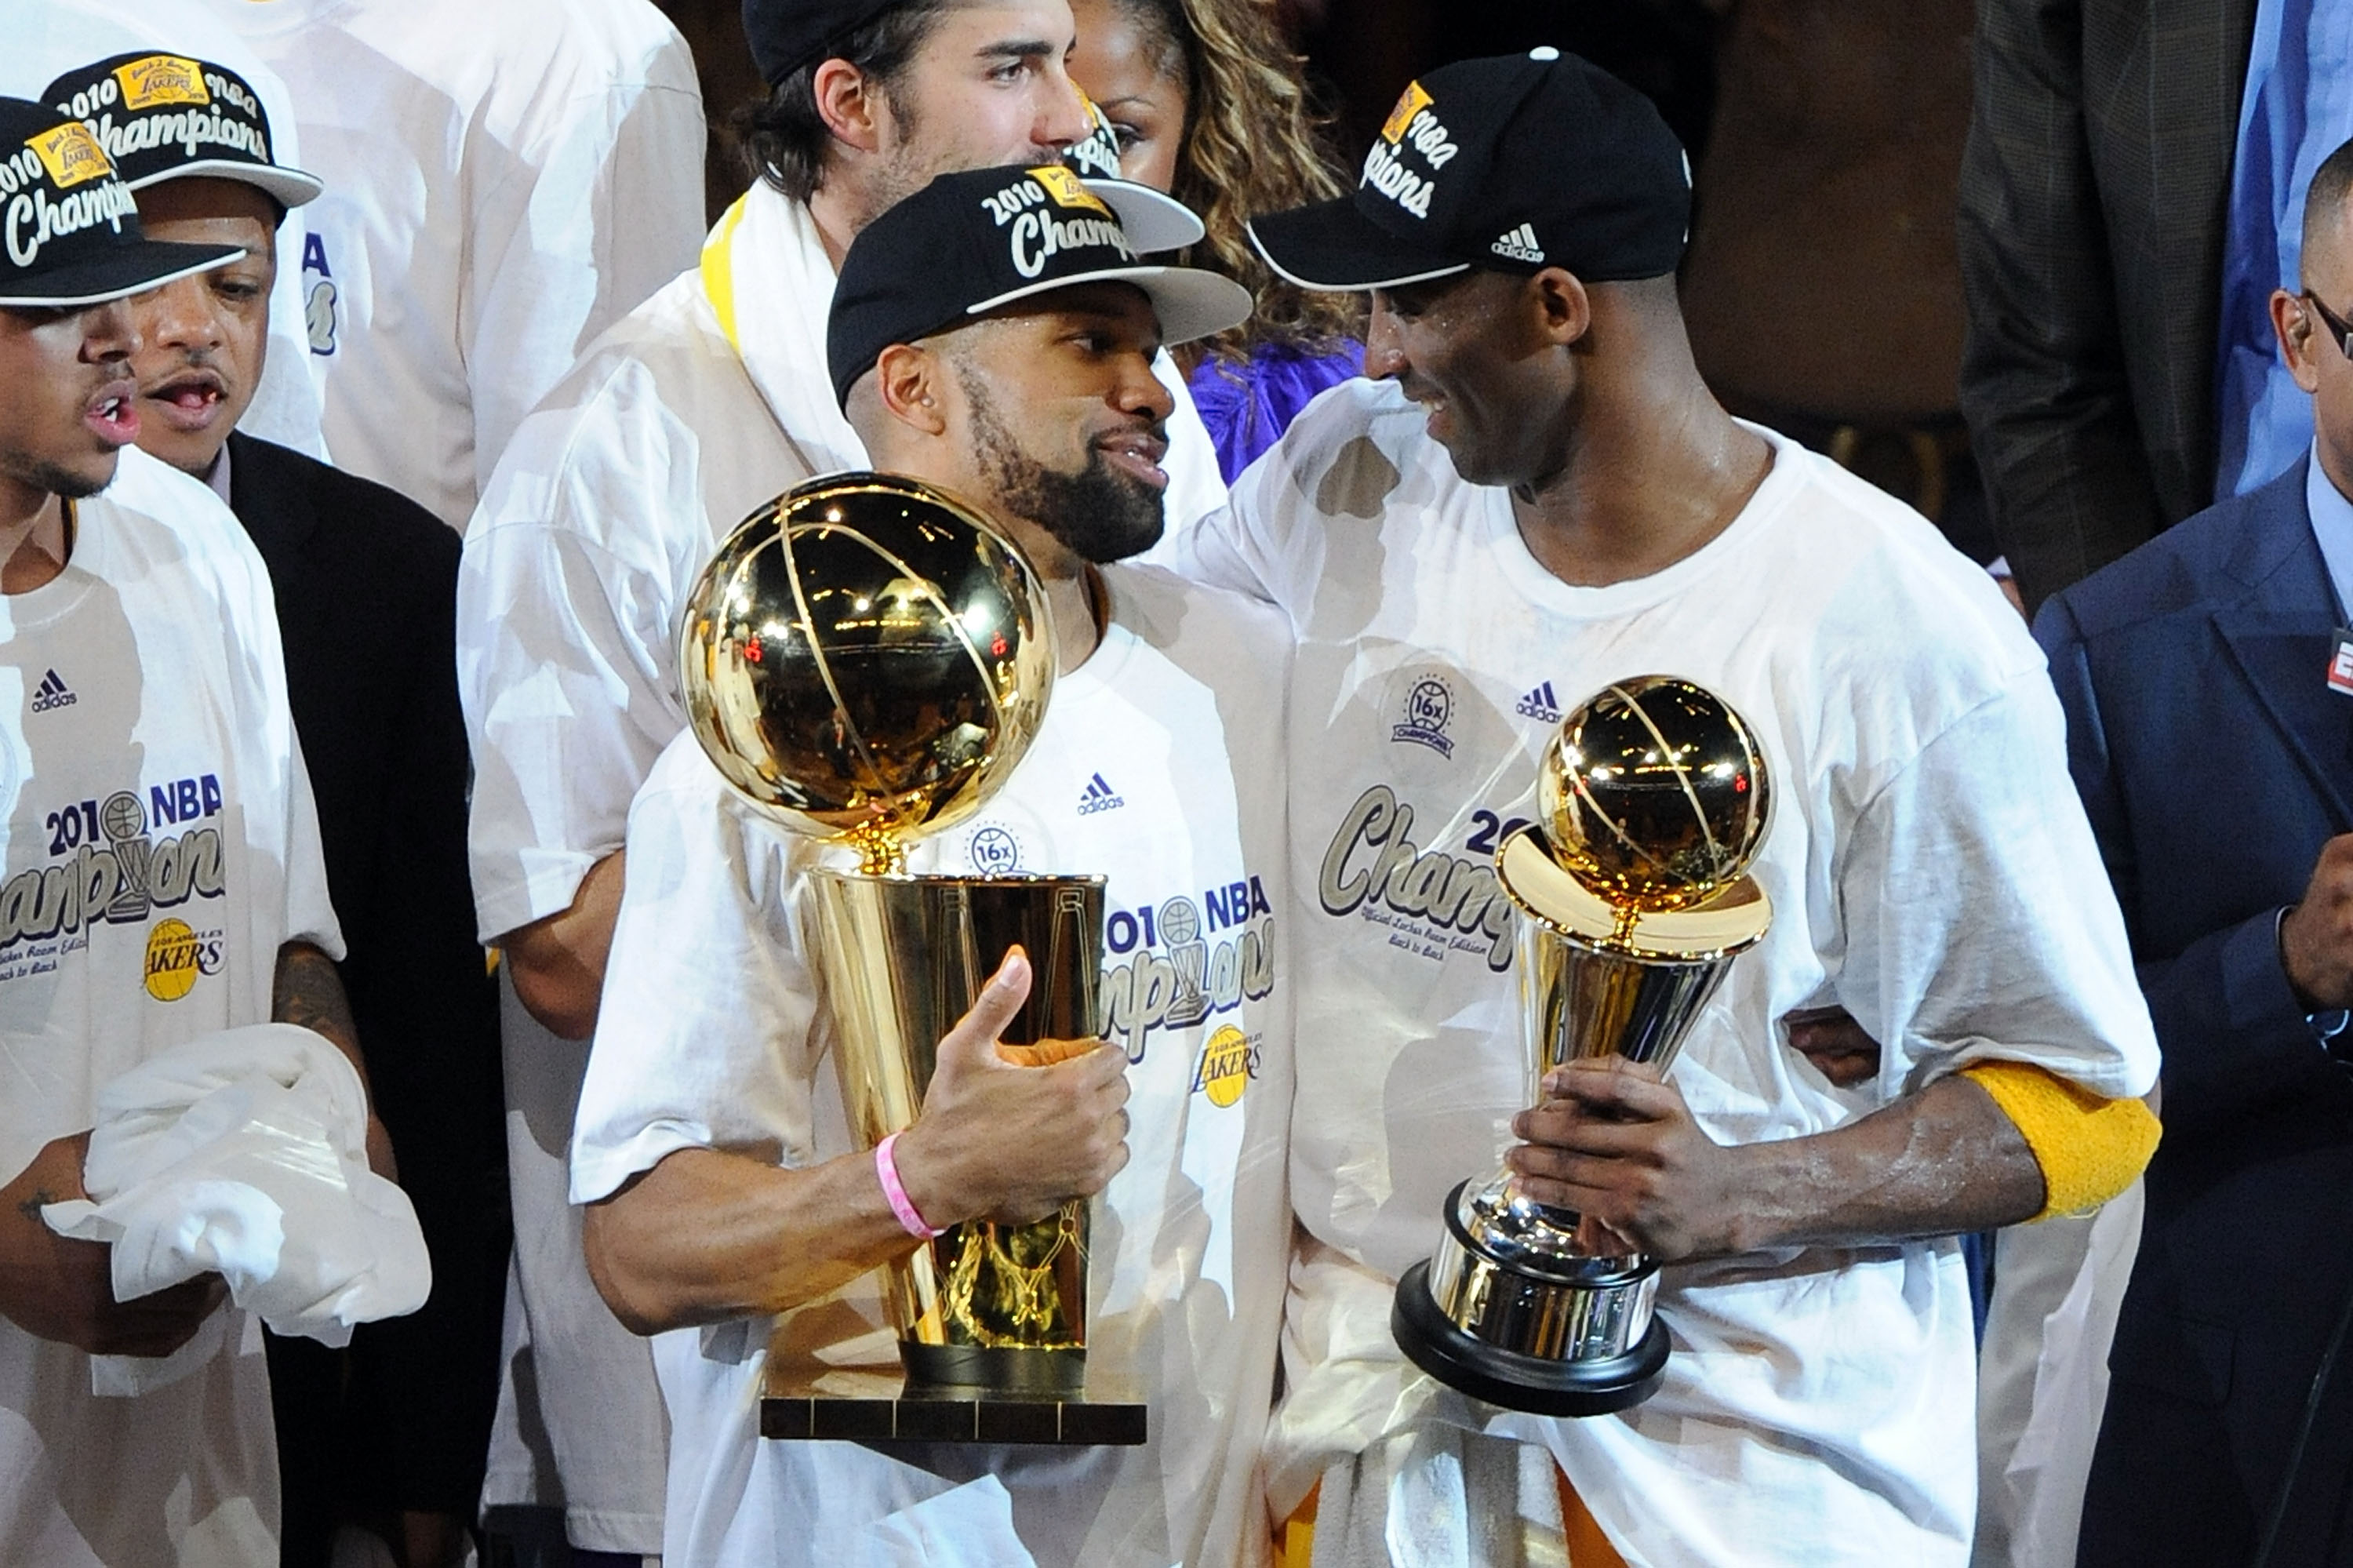 LOS ANGELES, CA - JUNE 17:  Derek Fisher #2 and Kobe Bryant #24 of the Los Angeles Lakers celebrate after the Lakers defeated the Boston Celtics 83-79 in Game Seven of the 2010 NBA Finals at Staples Center on June 17, 2010 in Los Angeles, California.  NOT